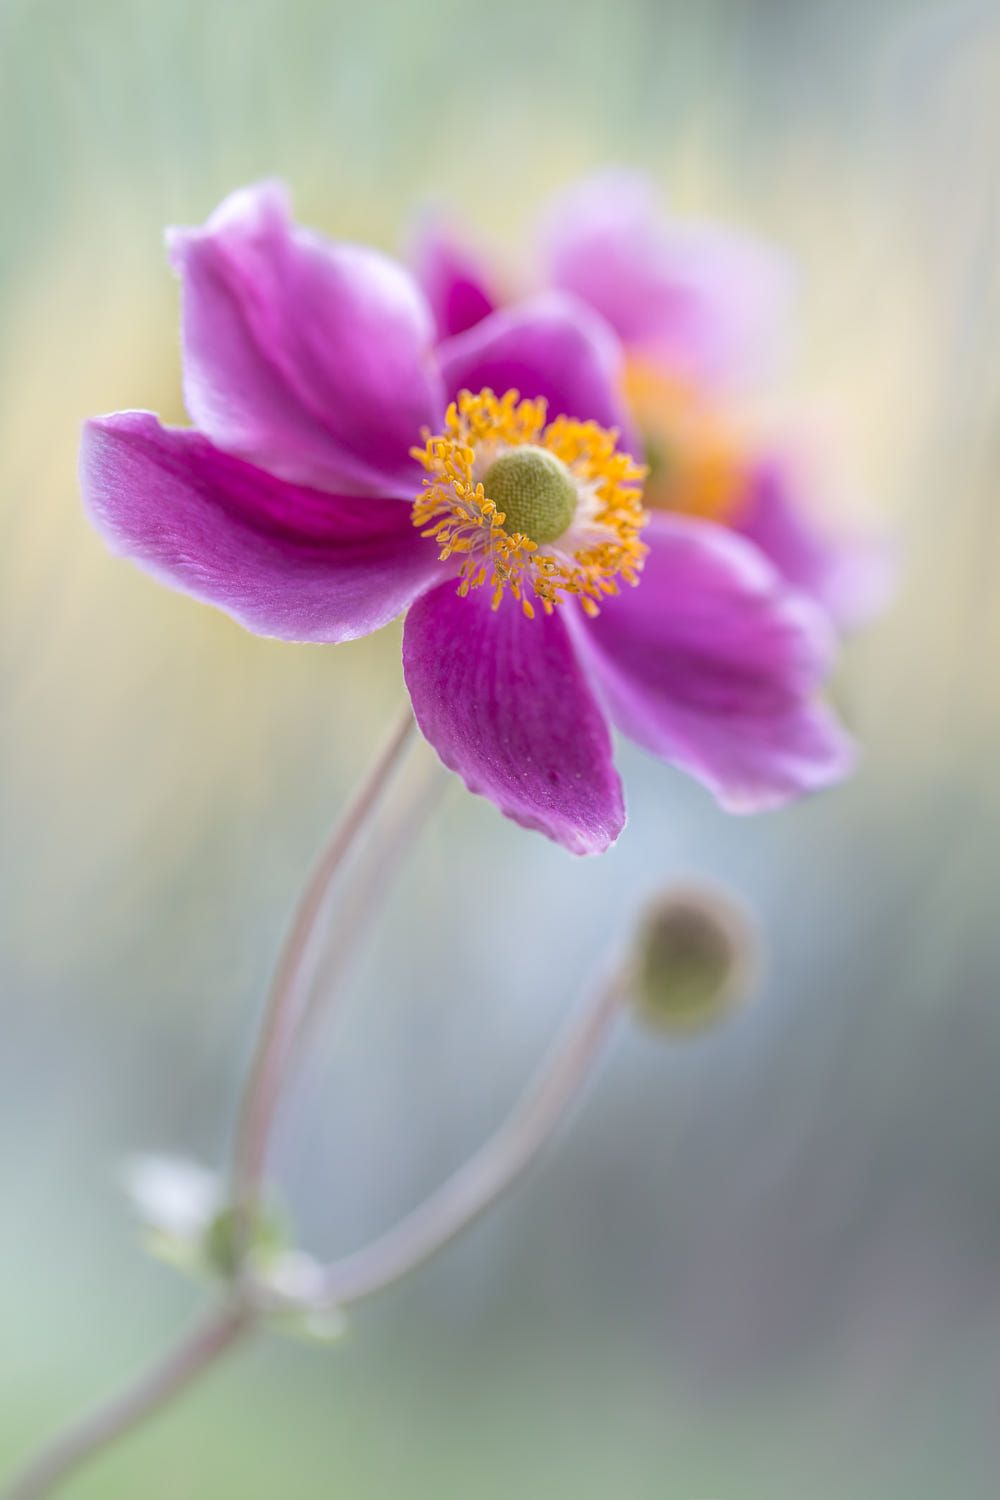 Pin by sonia elizabeth caliuolo on flores pinterest flowers